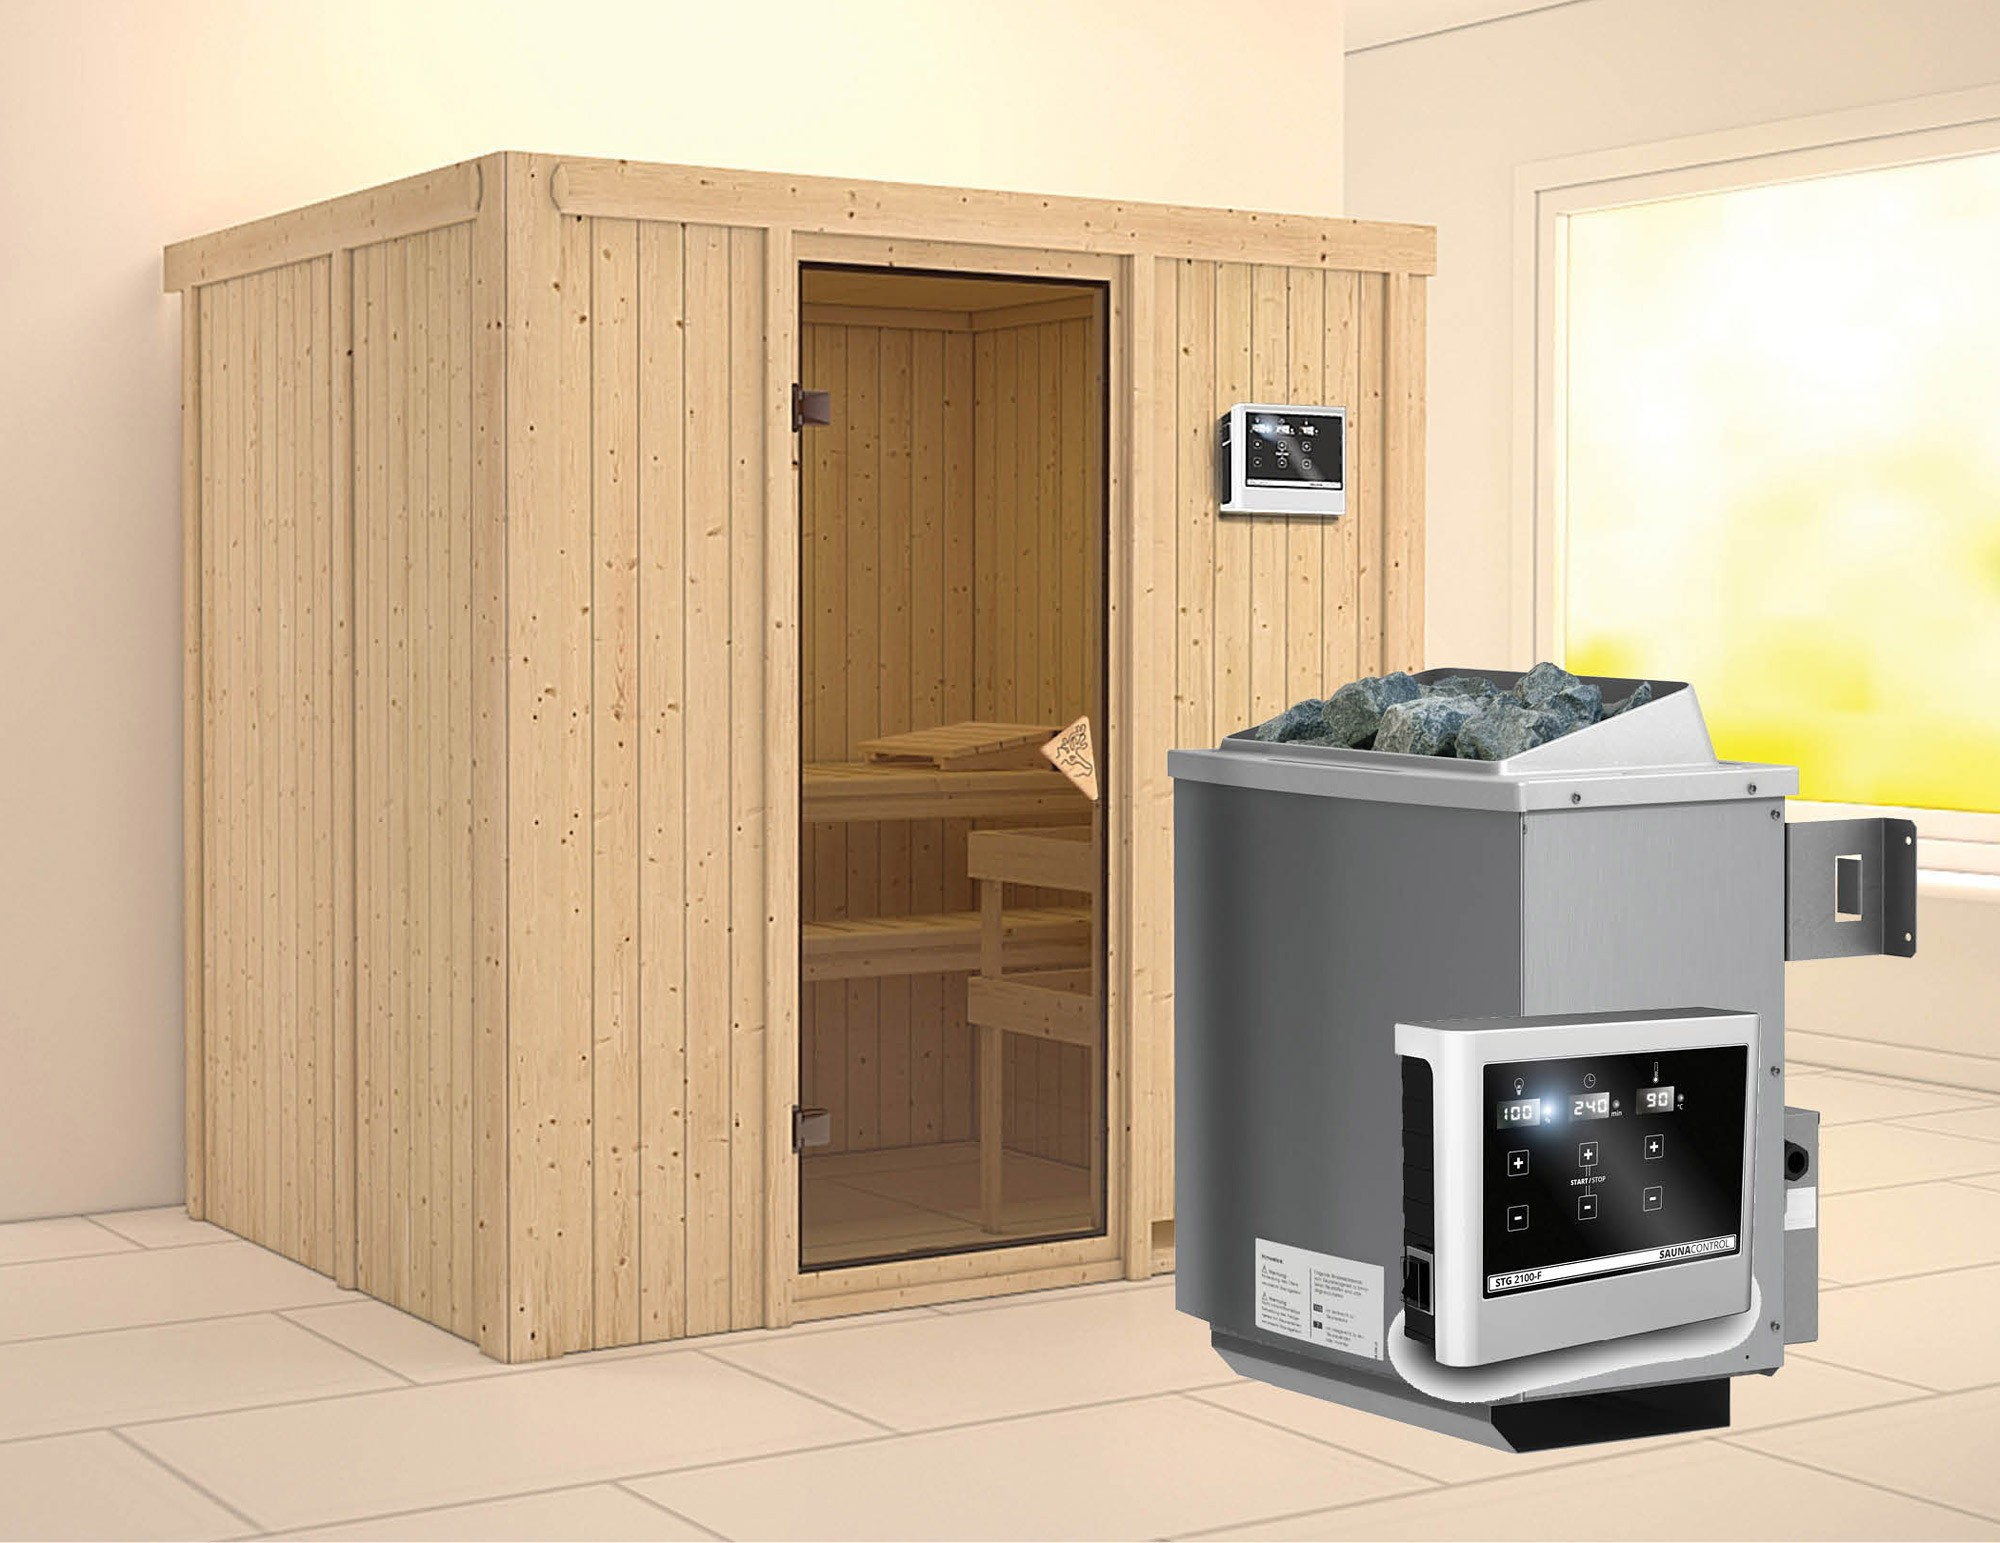 karibu sauna bodin 68mm mit ofen 9kw extern classic t r. Black Bedroom Furniture Sets. Home Design Ideas